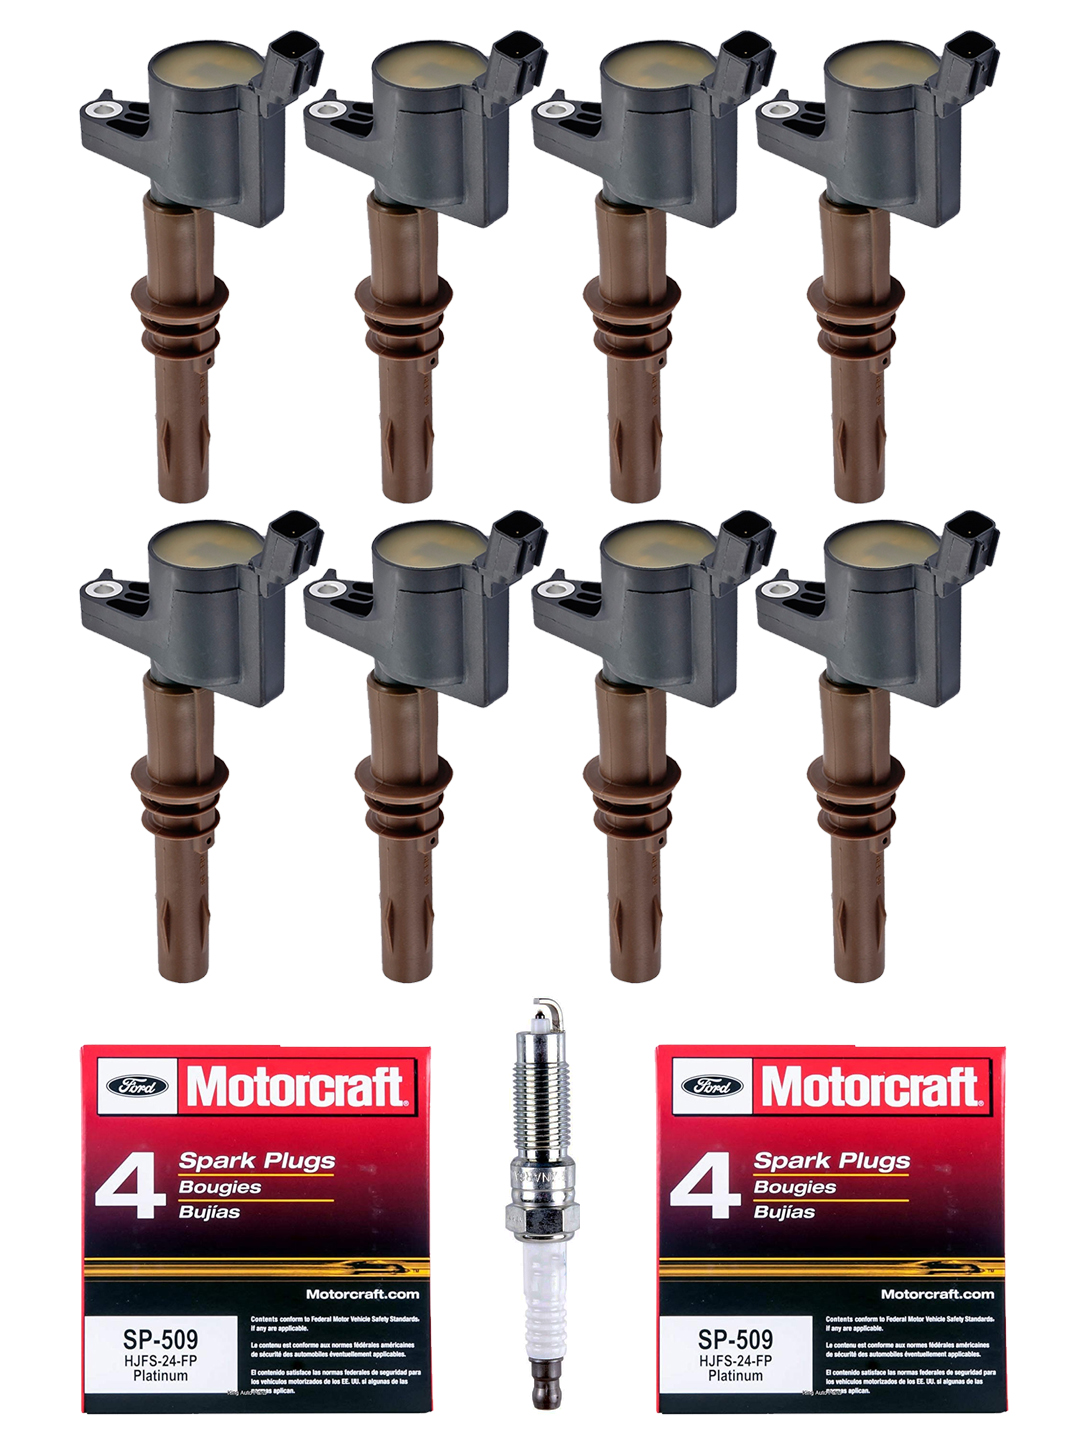 hight resolution of set of 8 ignition coils with brown boot motorcraft spark plugs sp509 for 2008 2014 lincoln navigator 5 4l v8 walmart com